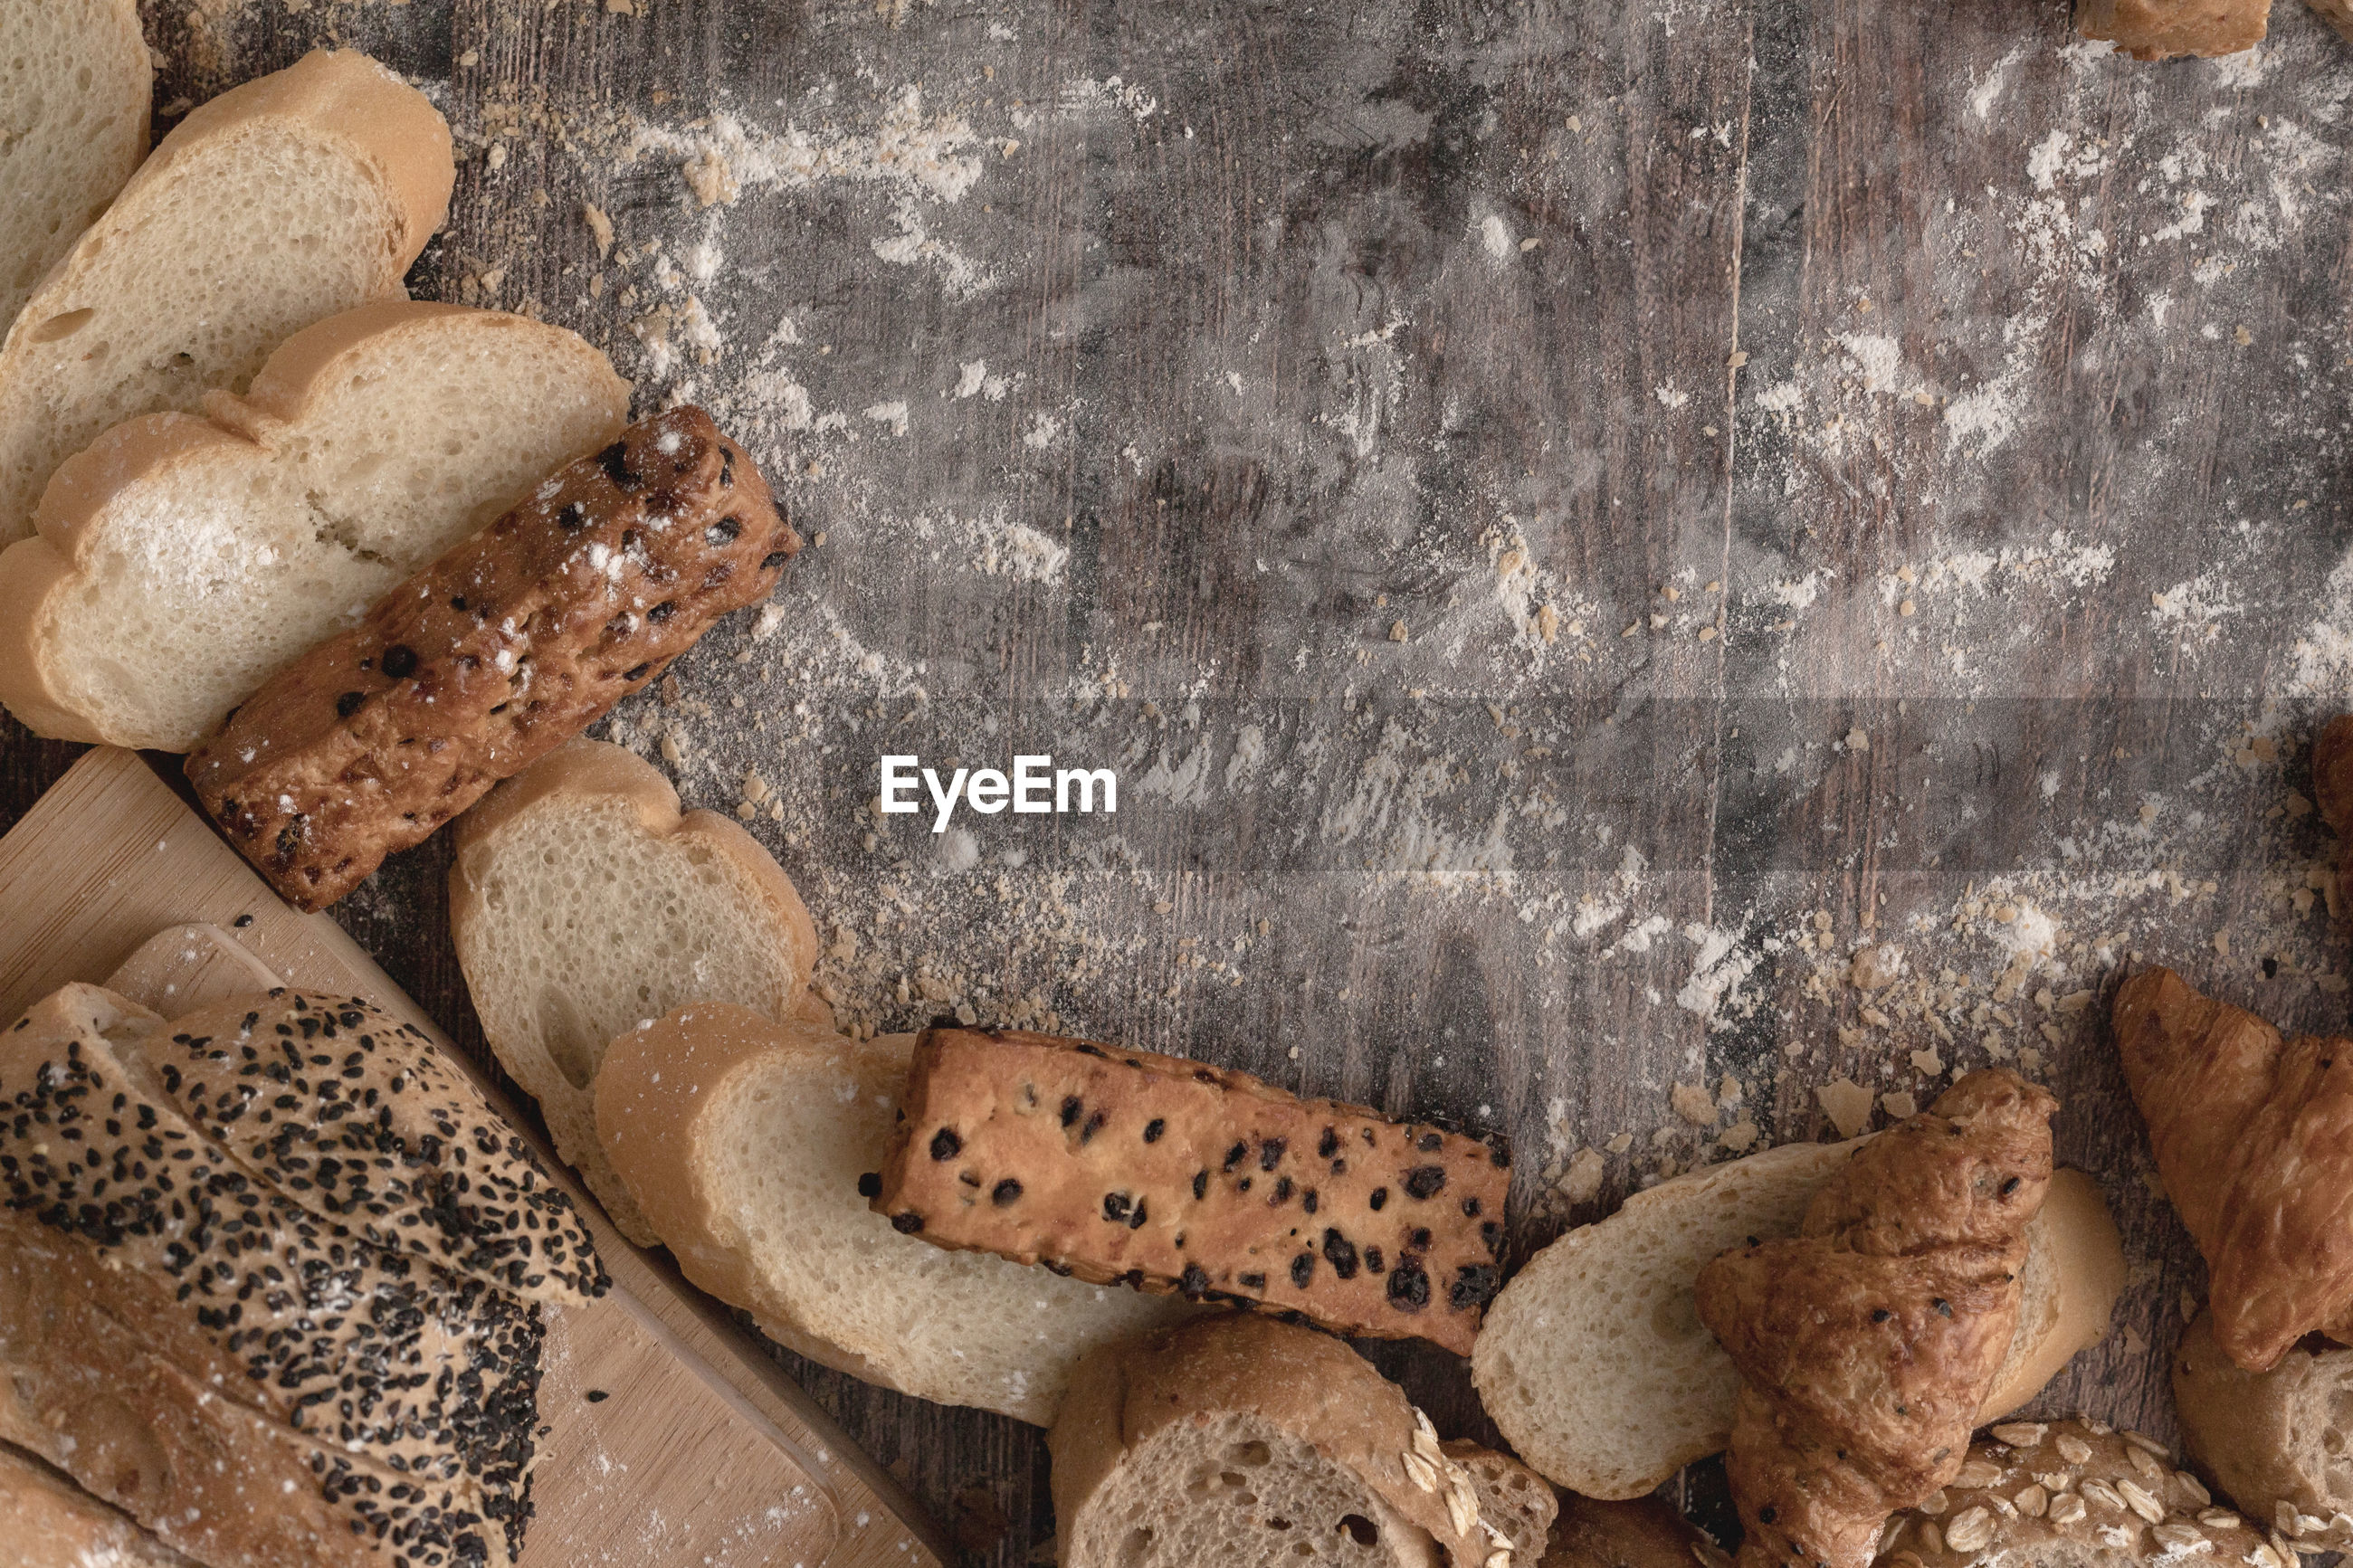 Breads and pastry flour on a wooden table and copy space for text input